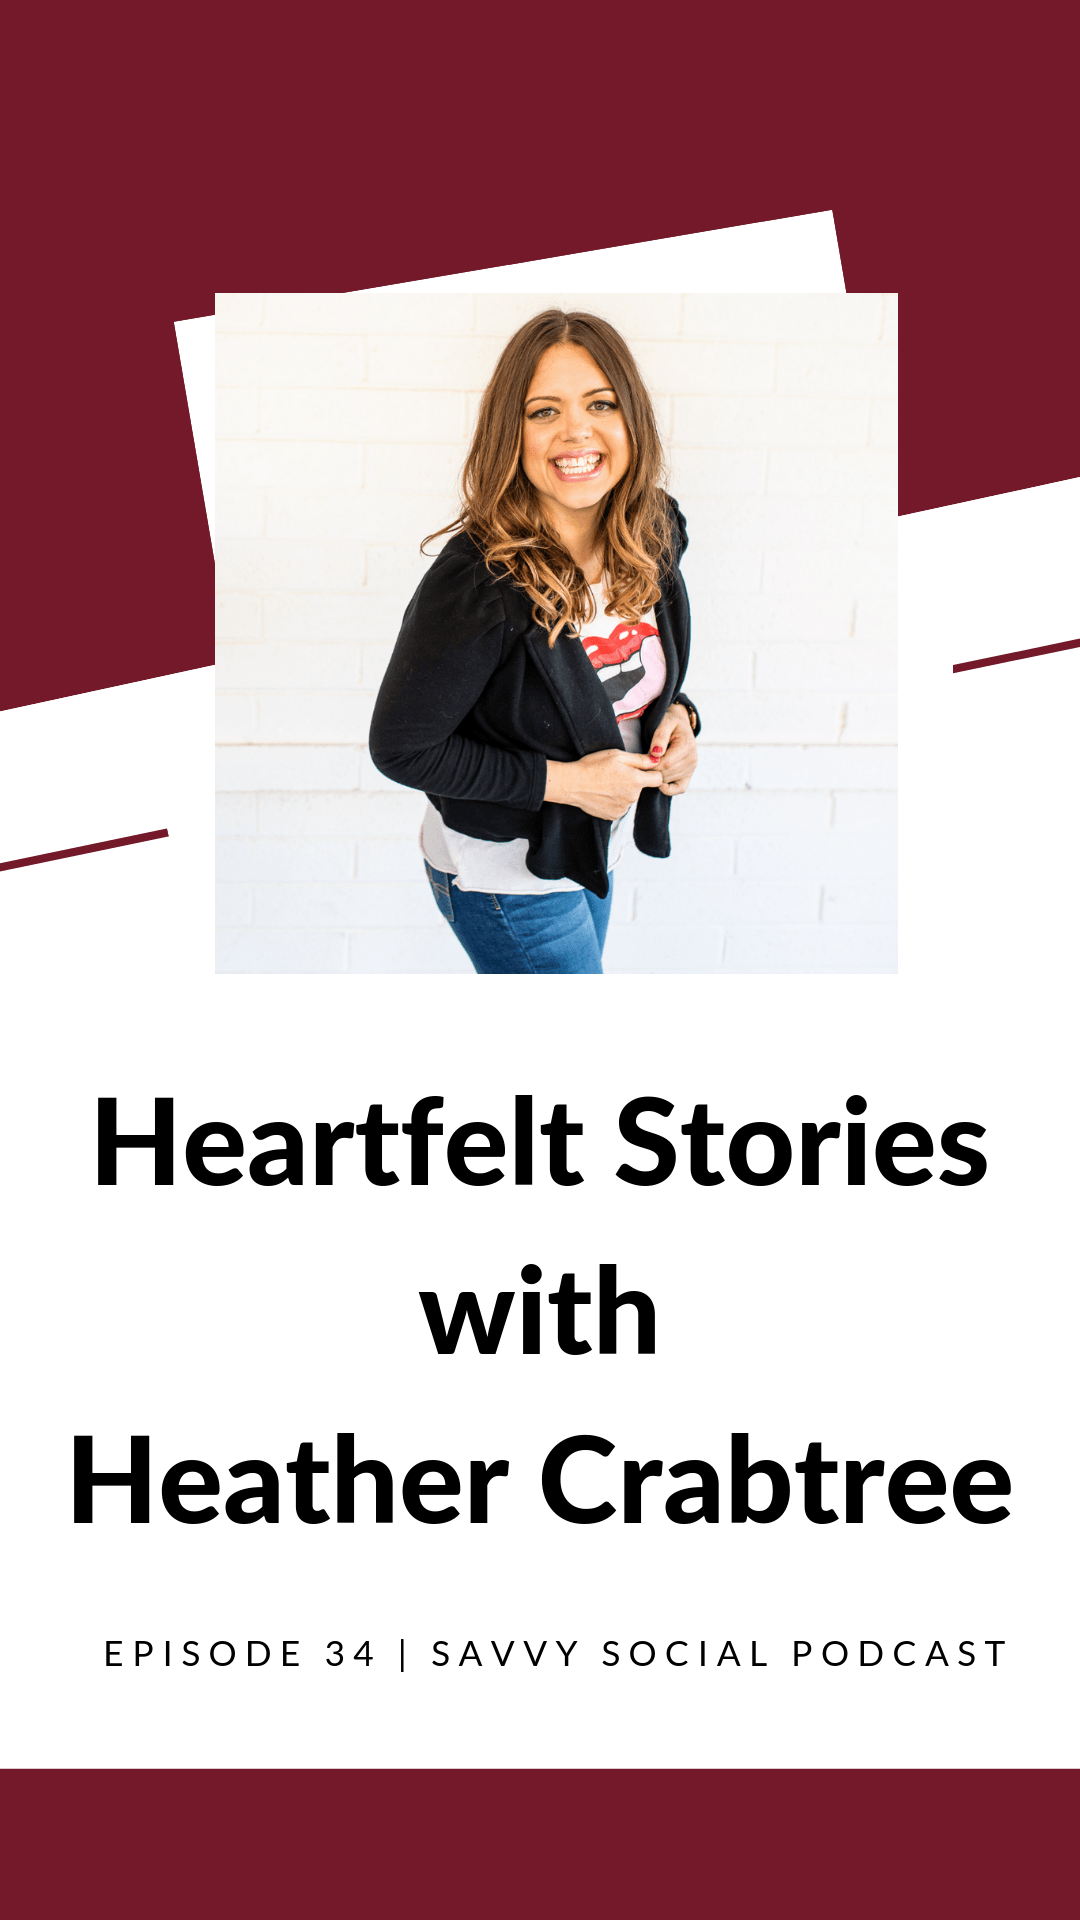 Listen in to this episode of the #SavvySocialPodcast podcast to hear how @HeatherCrabtree brings heart and shares her story on social media. We talk about her #boundaries as well as how she manages to find balance.